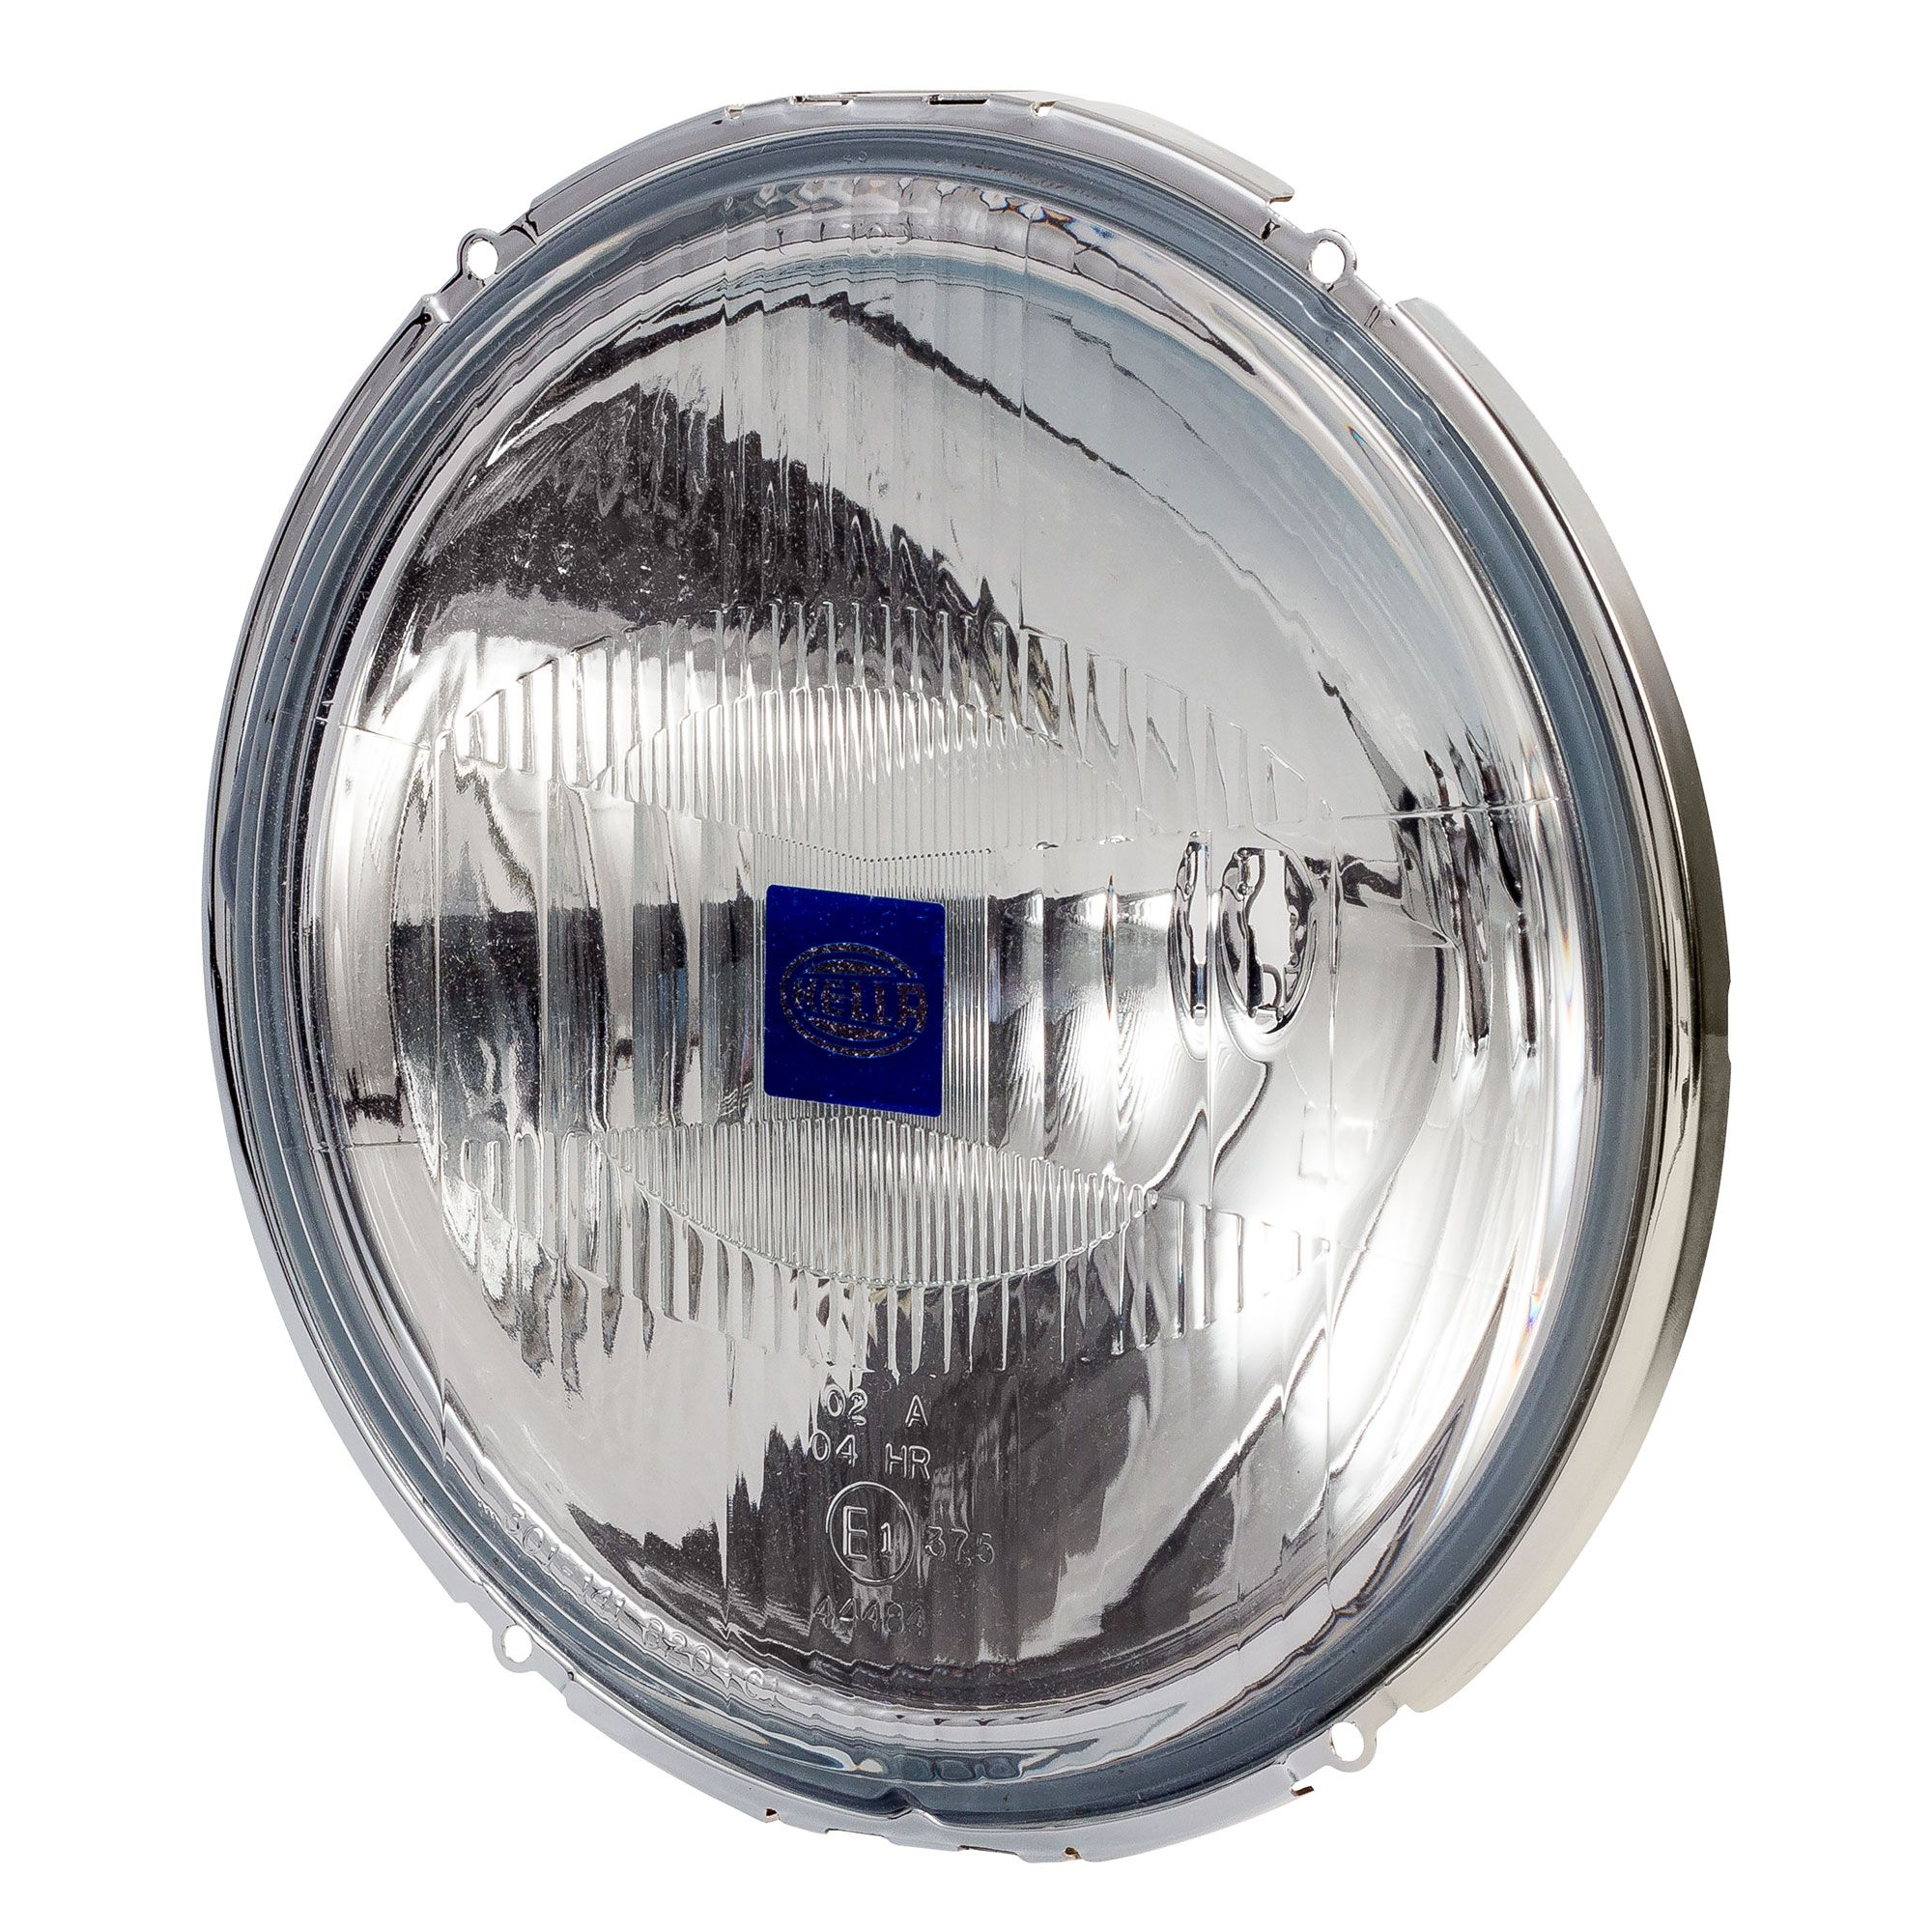 2 Pair HELLA Rallye 3000 Spot light//lamps with Pattern Lens for A Bars Roof Bars